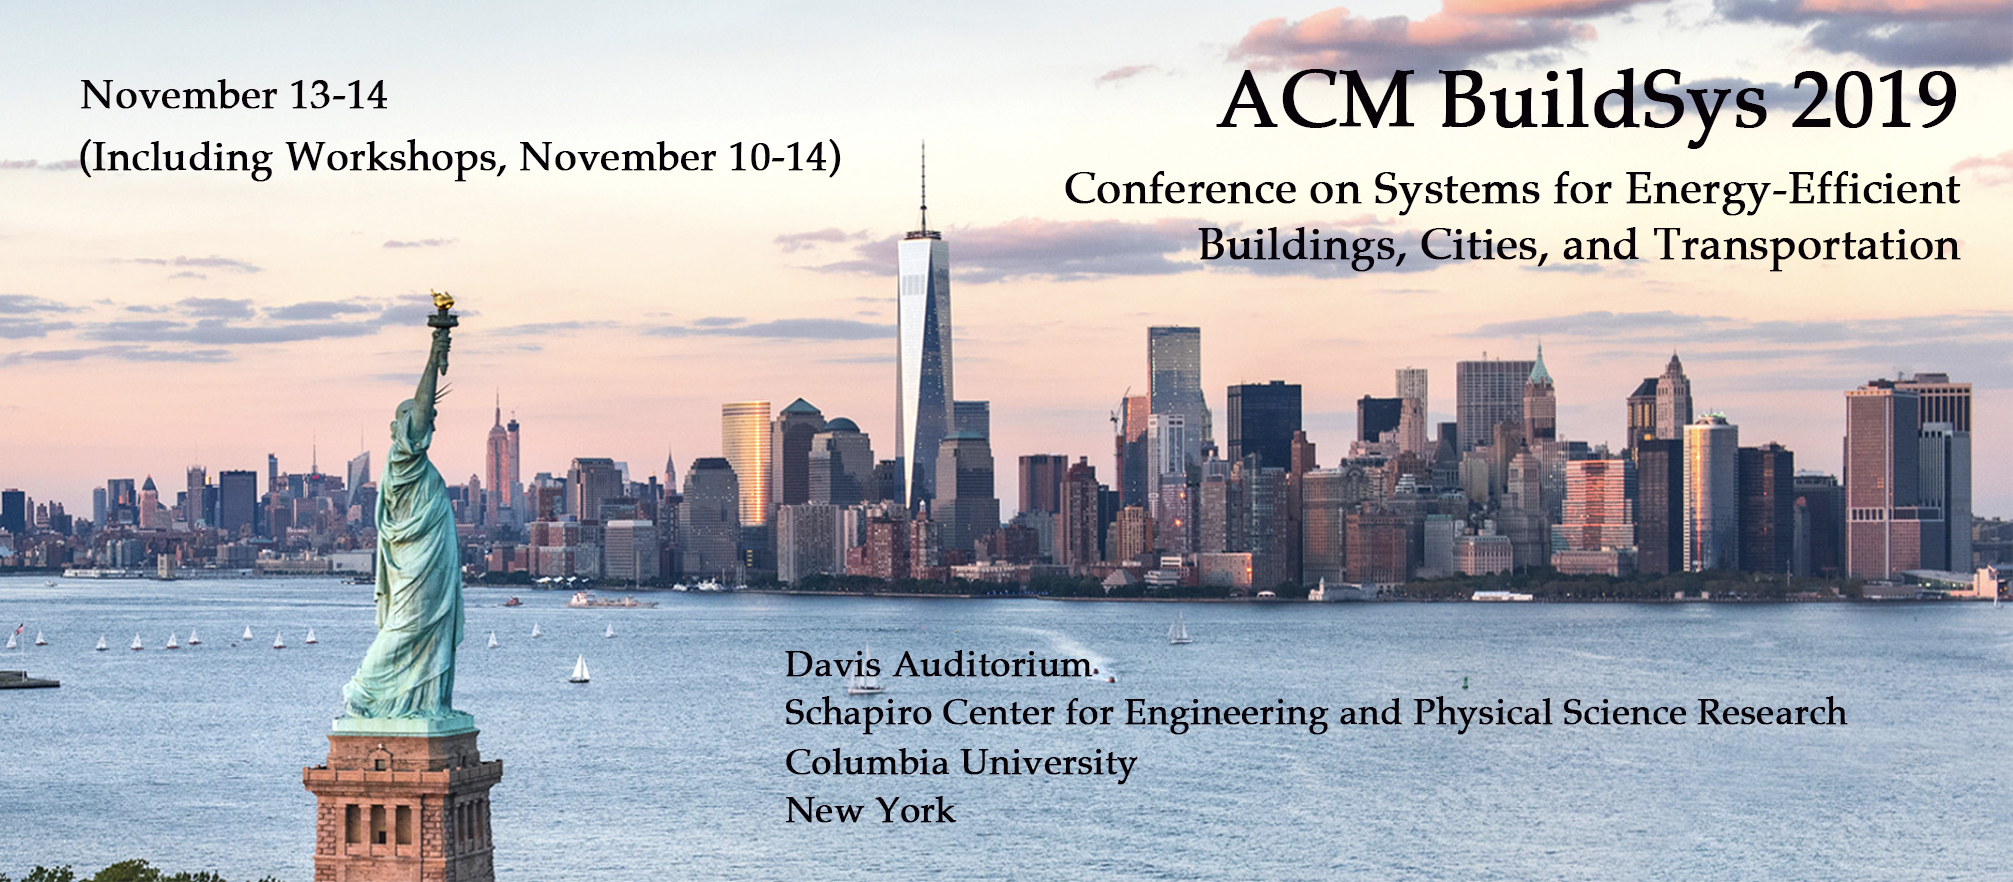 d5730882d The 6th ACM International Conference on Systems for Energy-Efficient  Buildings, Cities, and Transportation (BuildSys 2019) will host a highly  selective, ...